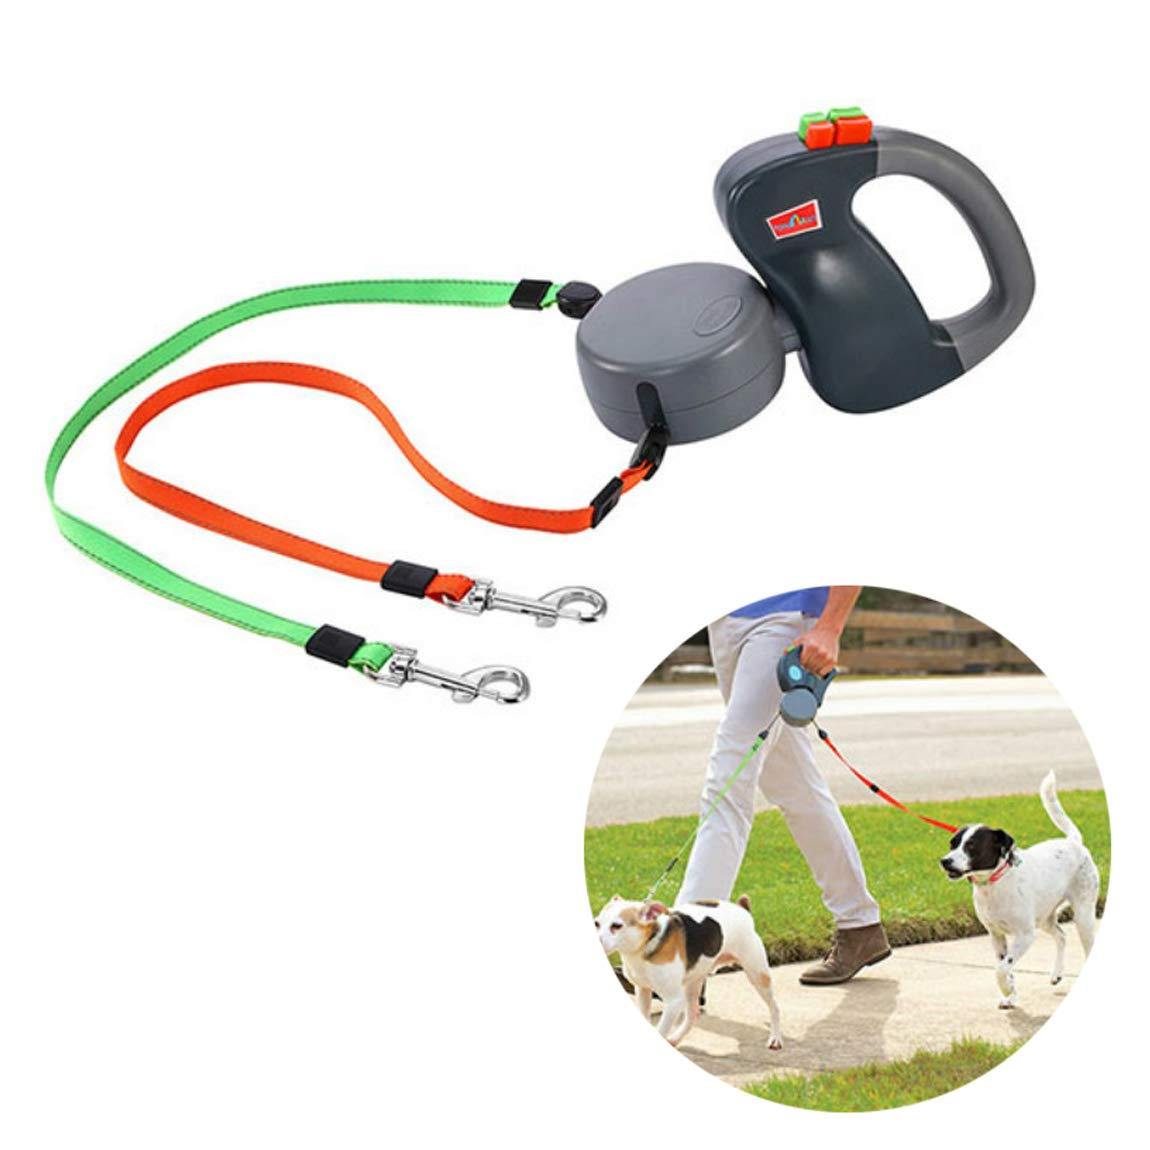 PanXeal Dual Doggie Pet Leash Up with Innovative Gel Handle to 50 Lbs Per Dog and Zero Tangle Walk Two Dogs at Once